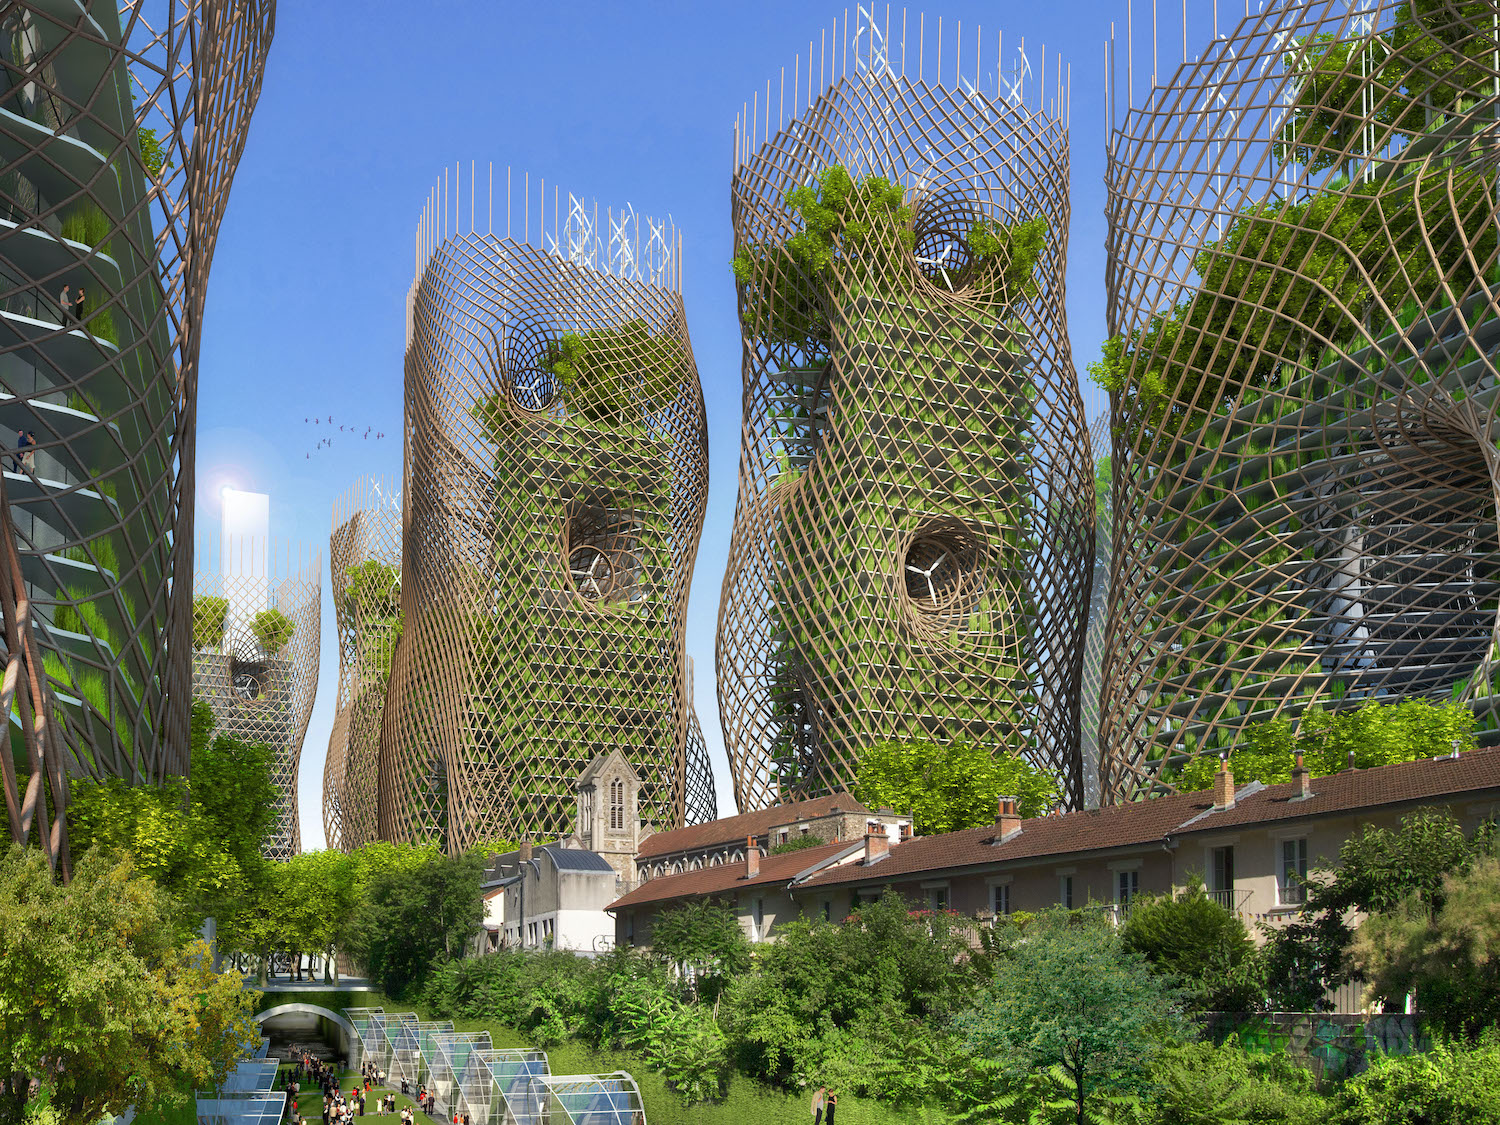 bamboo towers with turbine in the middle